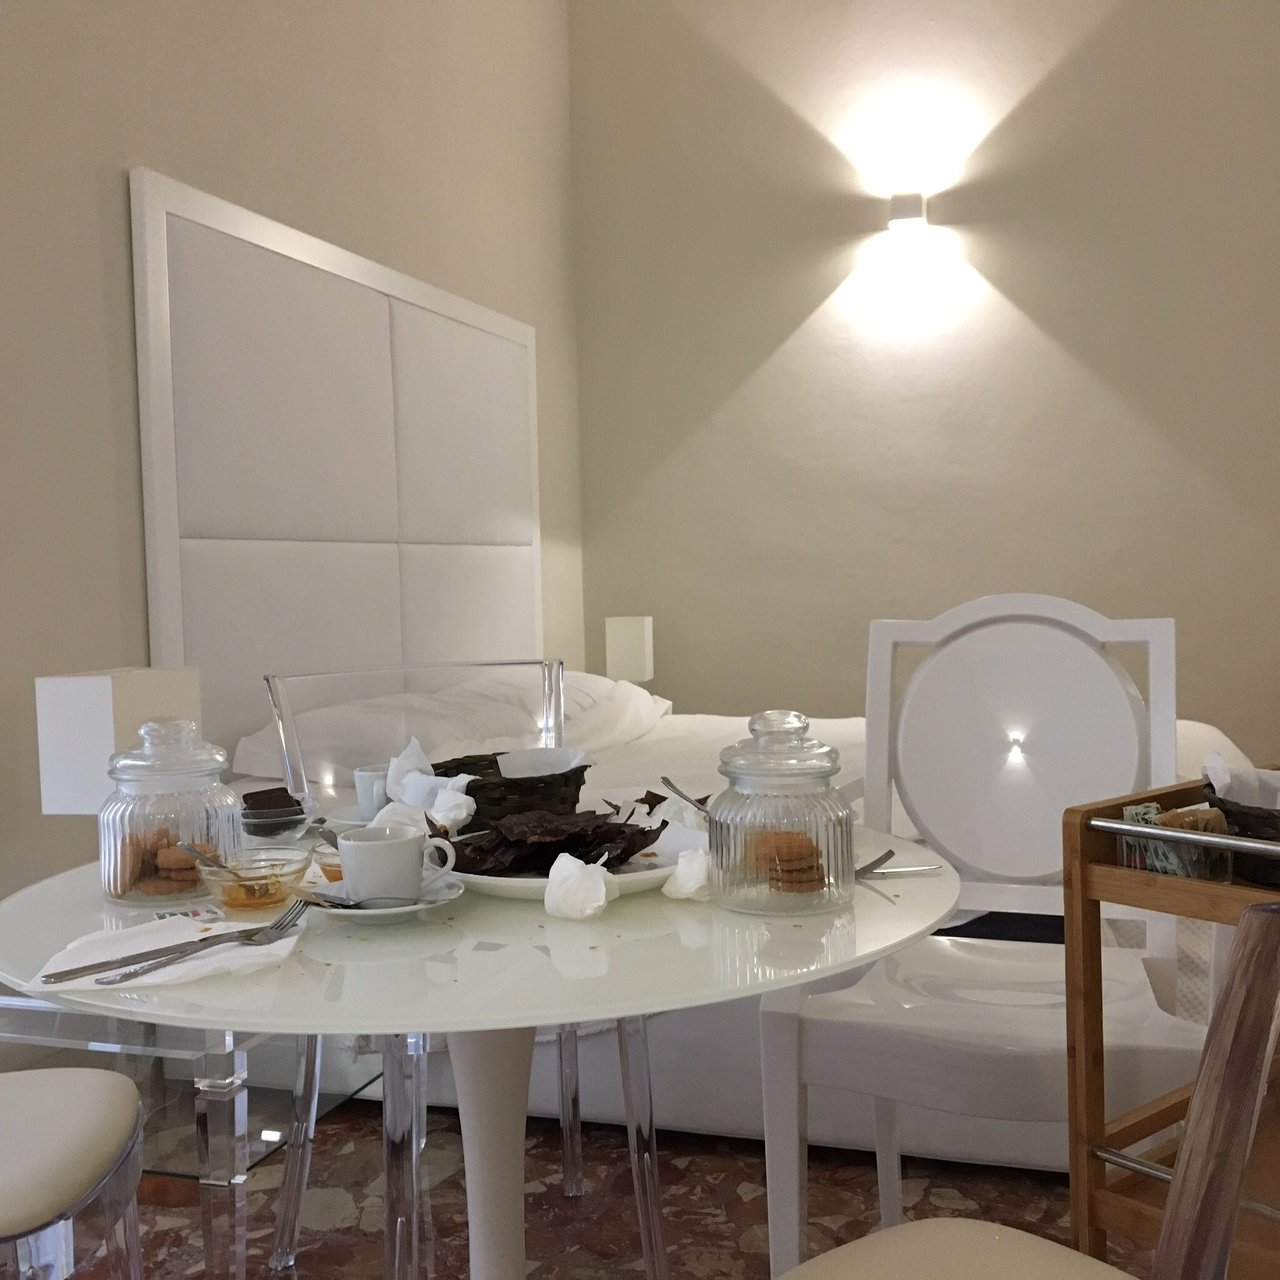 Bed & Breakfast Diana - UPDATED Prices, Reviews & Photos